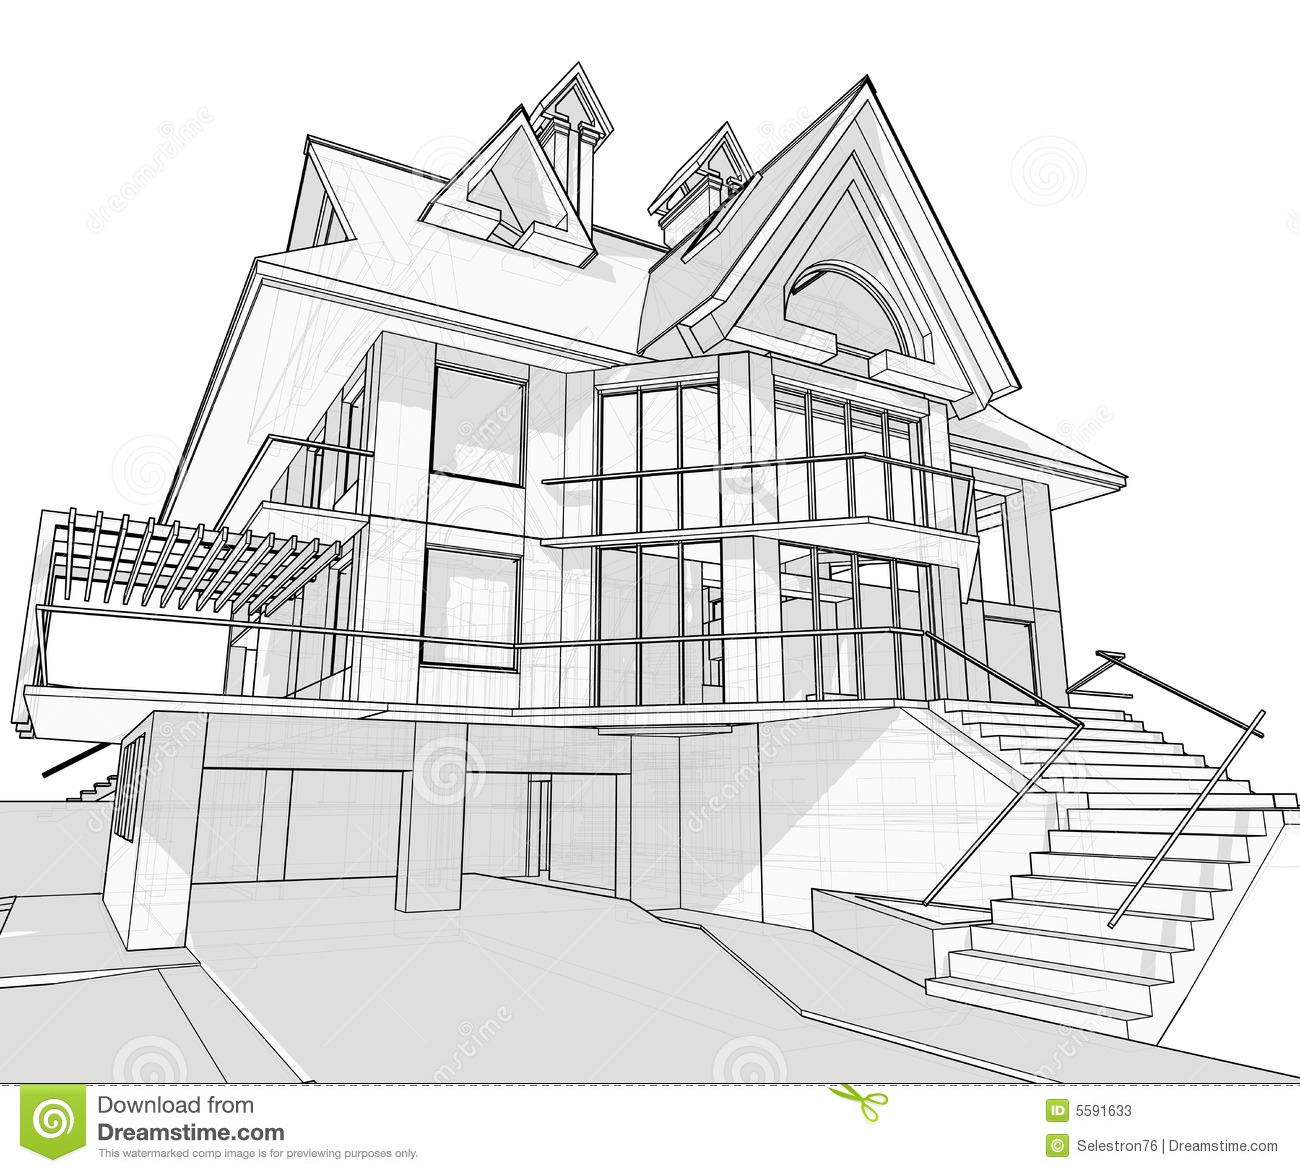 house architecture blueprint element development - How To Draw A Blueprint For A House